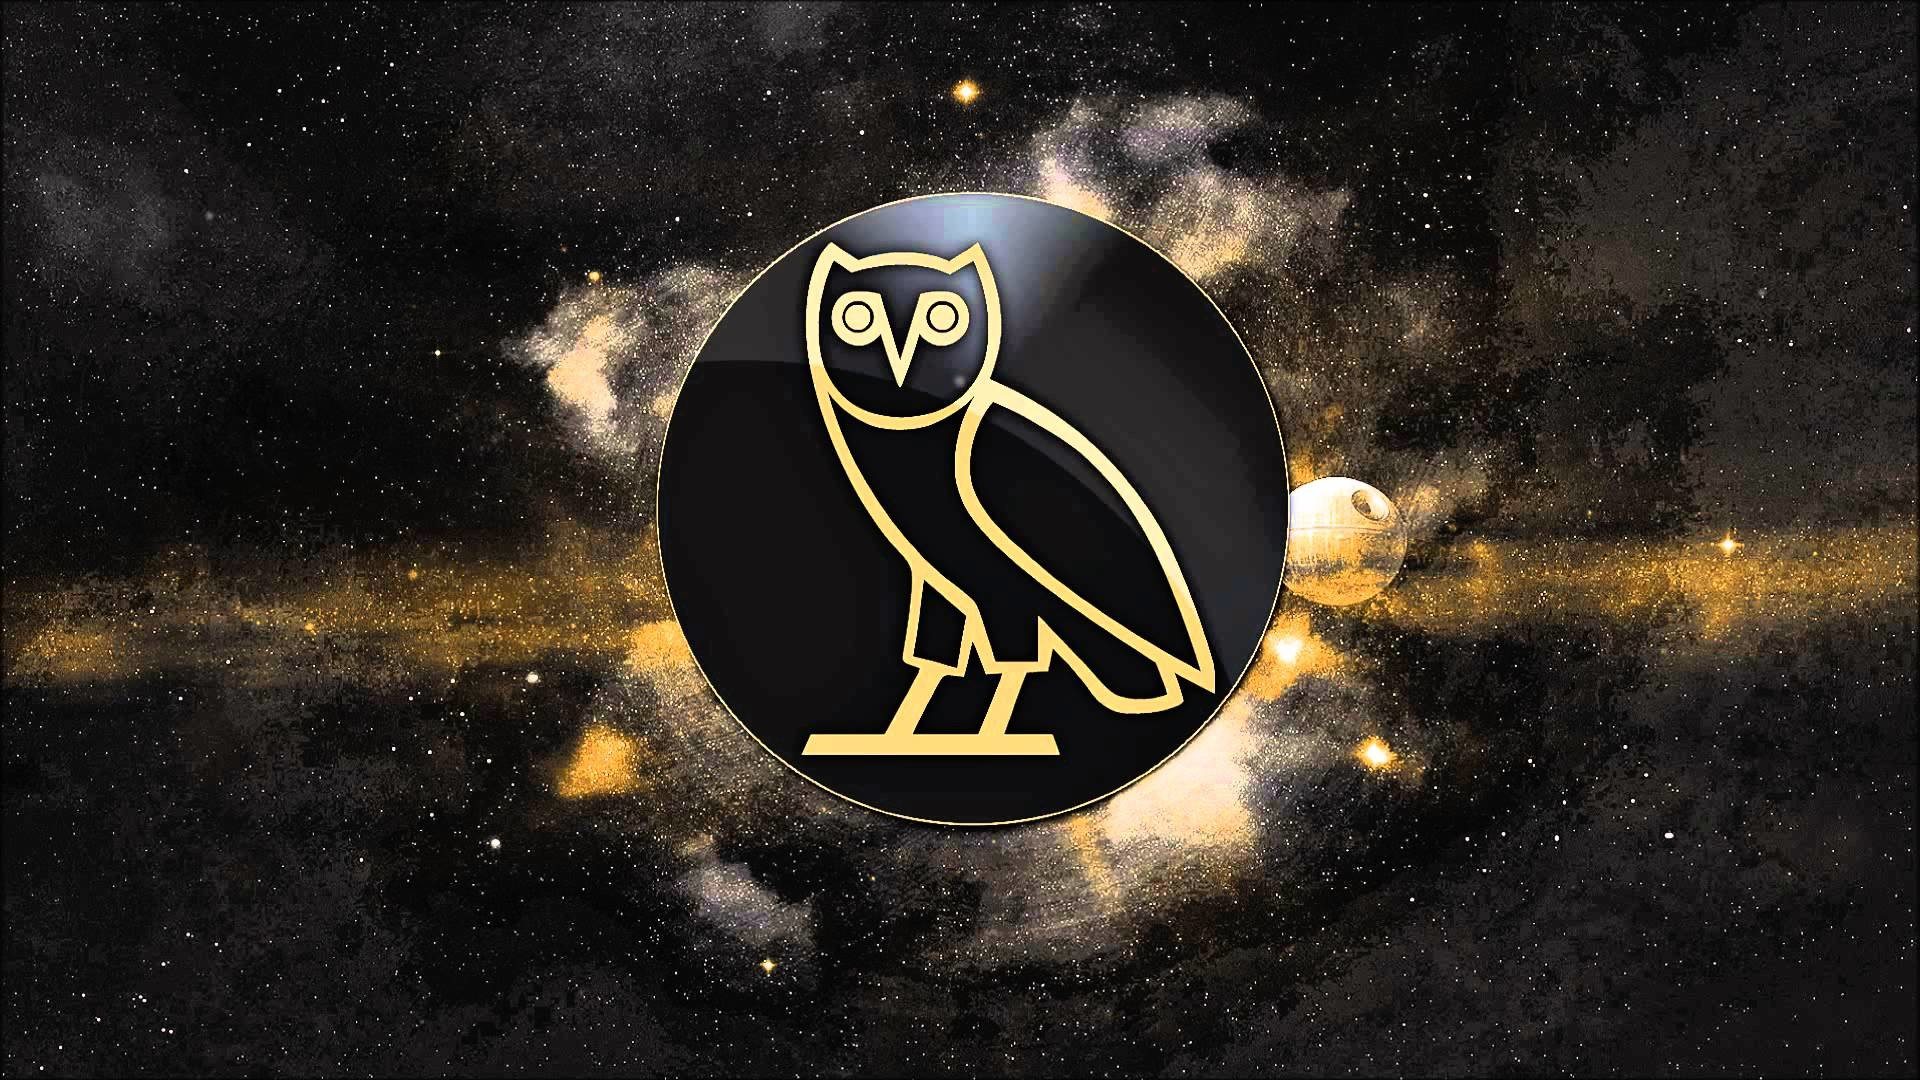 Ovo Wallpaper iPhone HD (77+ images)